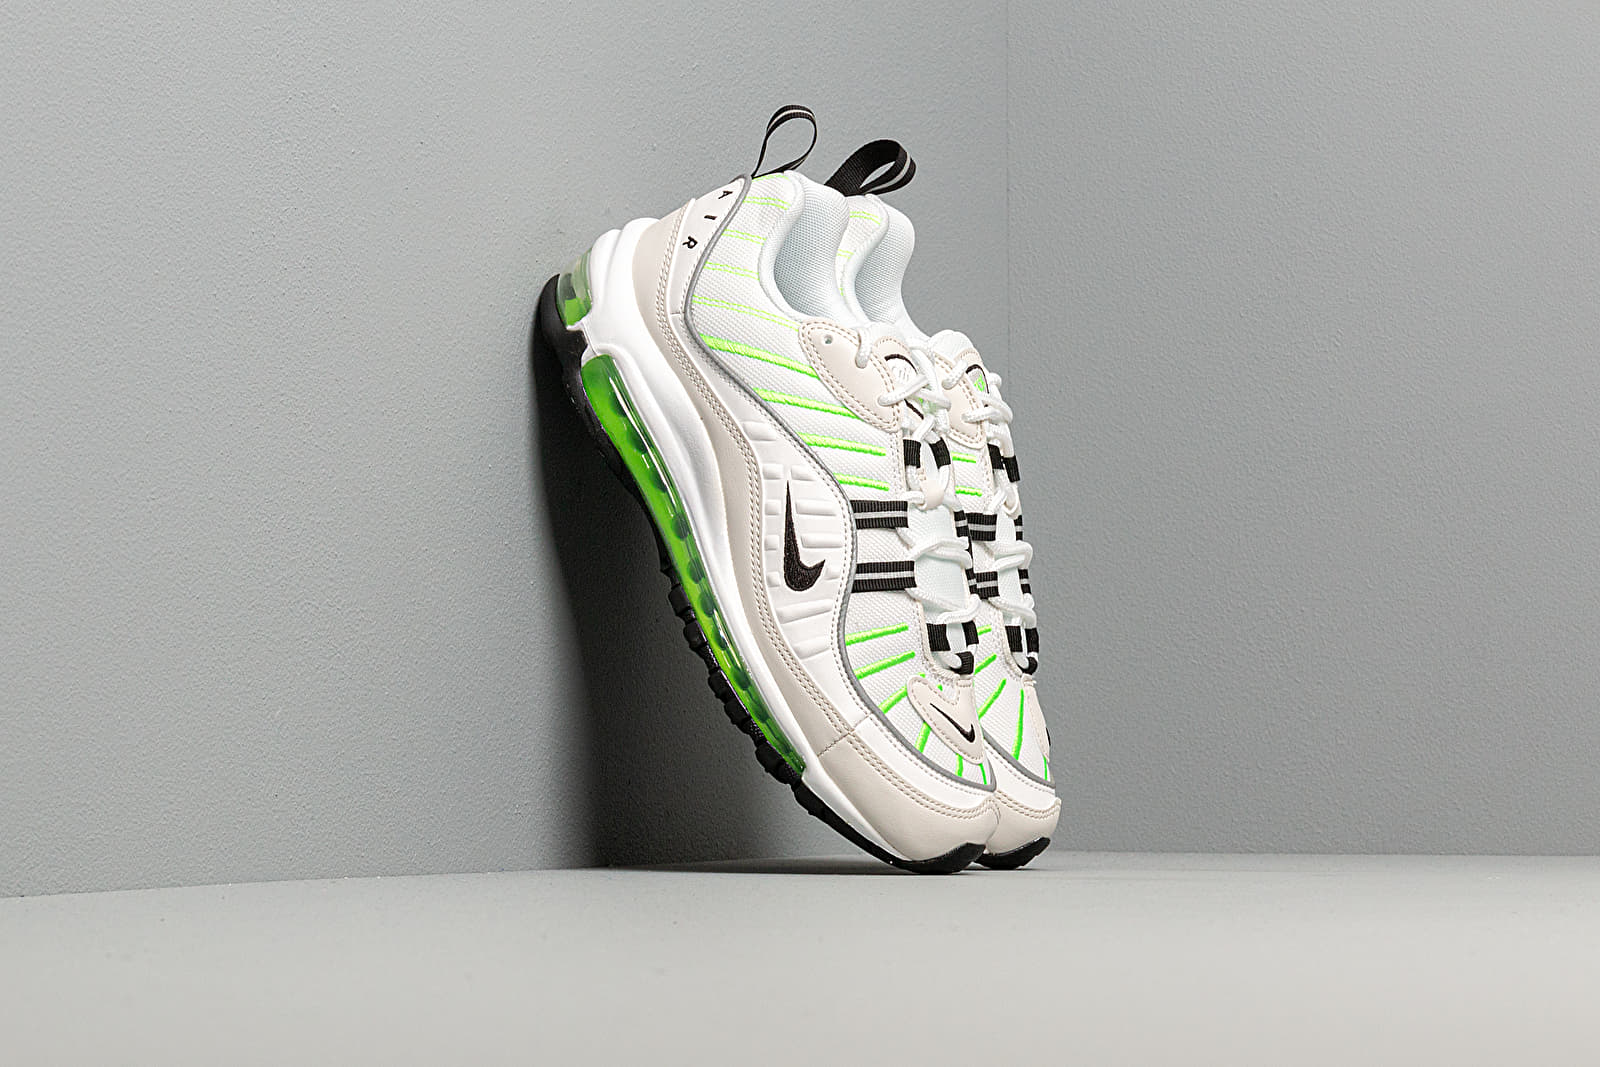 Chaussures et baskets femme Nike W Air Max 98 Summit White/ Black-Phantom